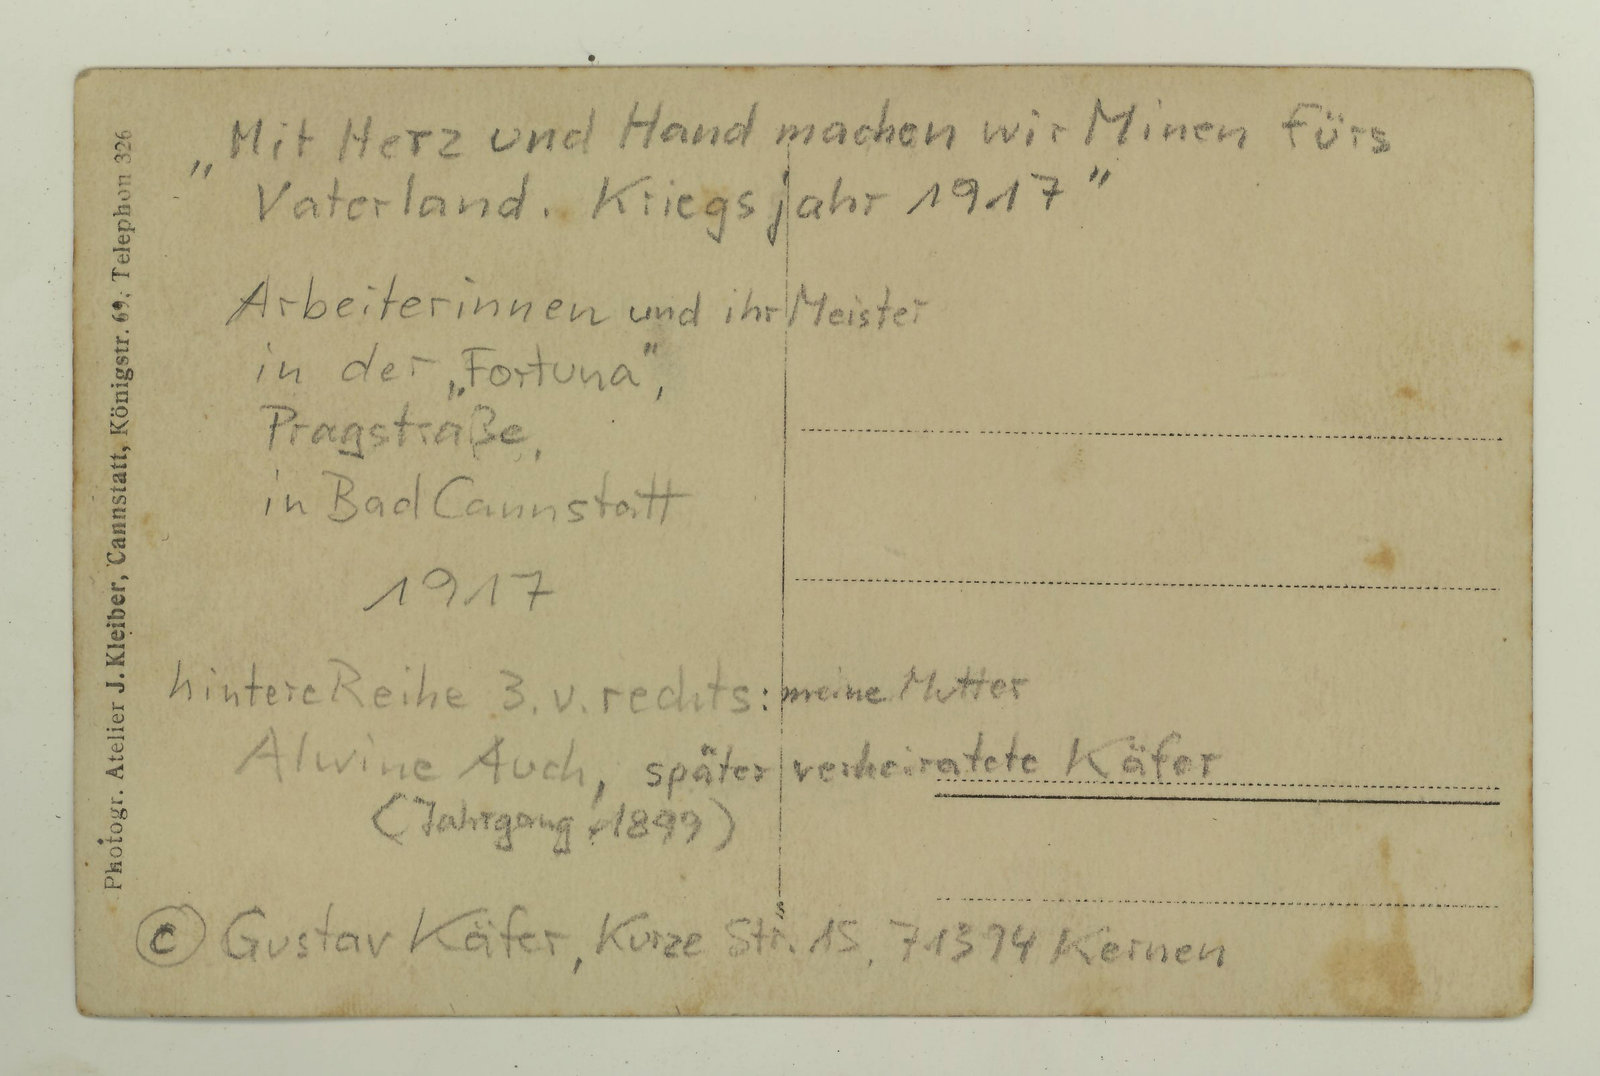 Postcard Alwina Käfer-Auch at Fortuna Factory - back, 1917, Bad Cannstatt, Stuttgart, Europeana 1914 -1918 / Gustav Käfer, CC BY-SA